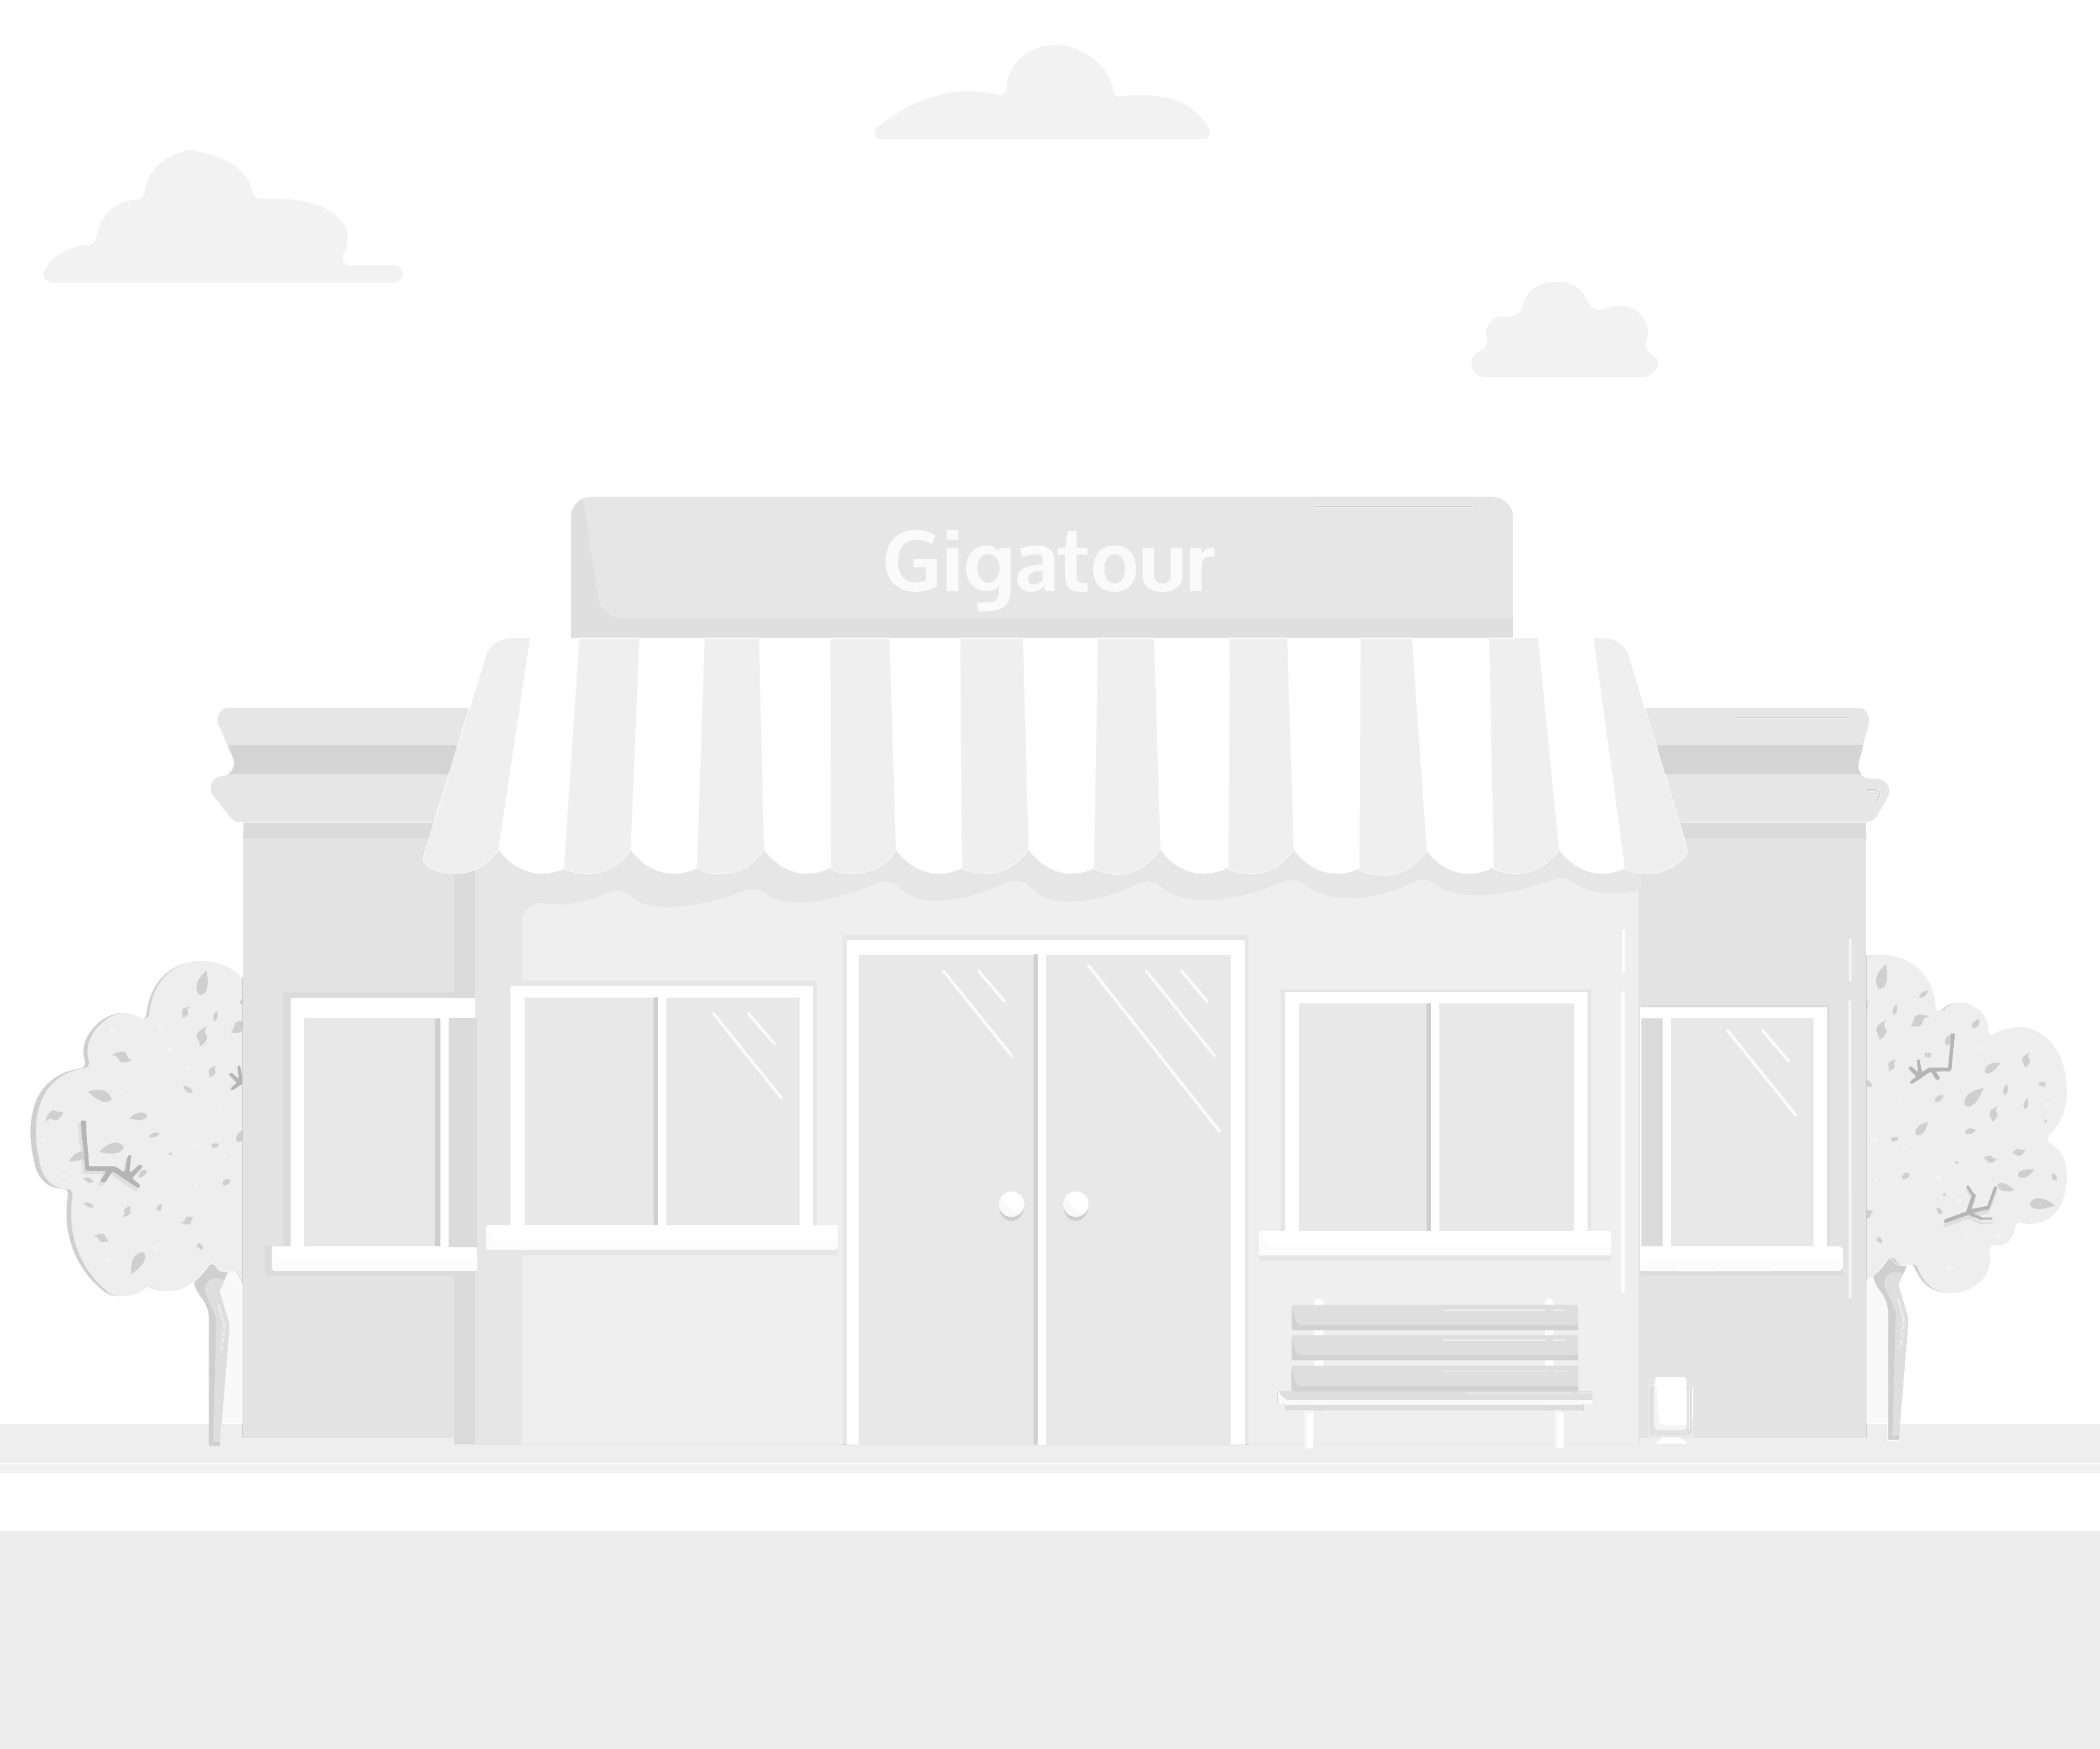 Placeholder agence Gigatour.be